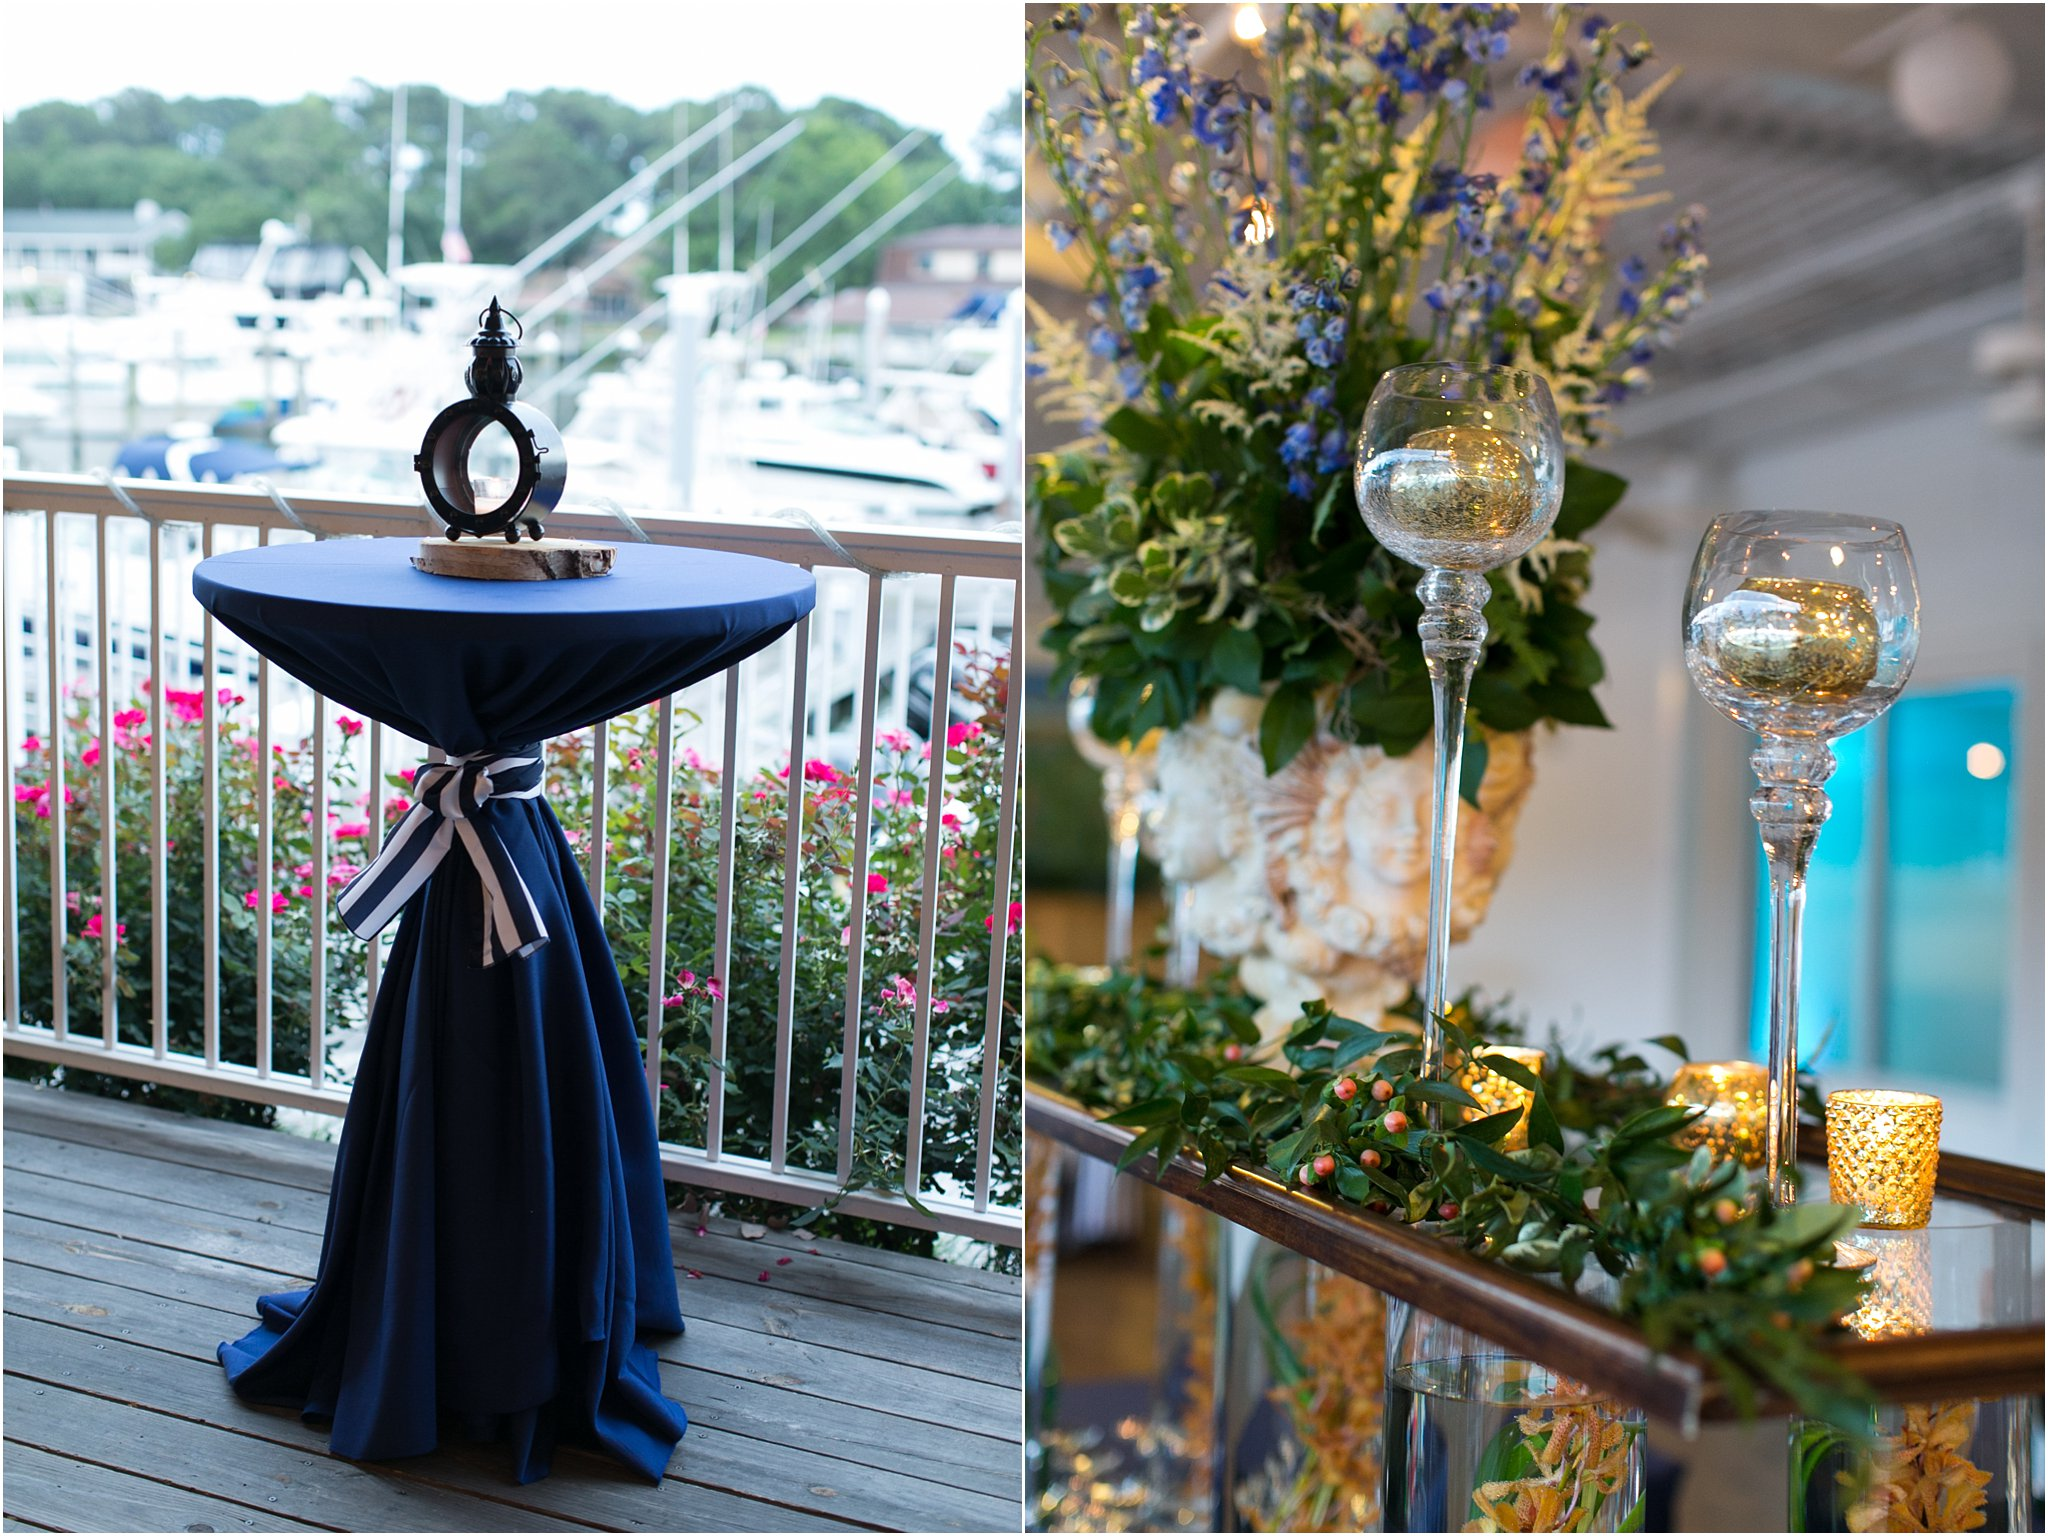 jessica_ryan_photography_wedding_photography_virginiabeach_virginia_candid_authentic_wedding_portraits_marina_shores_yacht_club_chesapeake_bay_1917